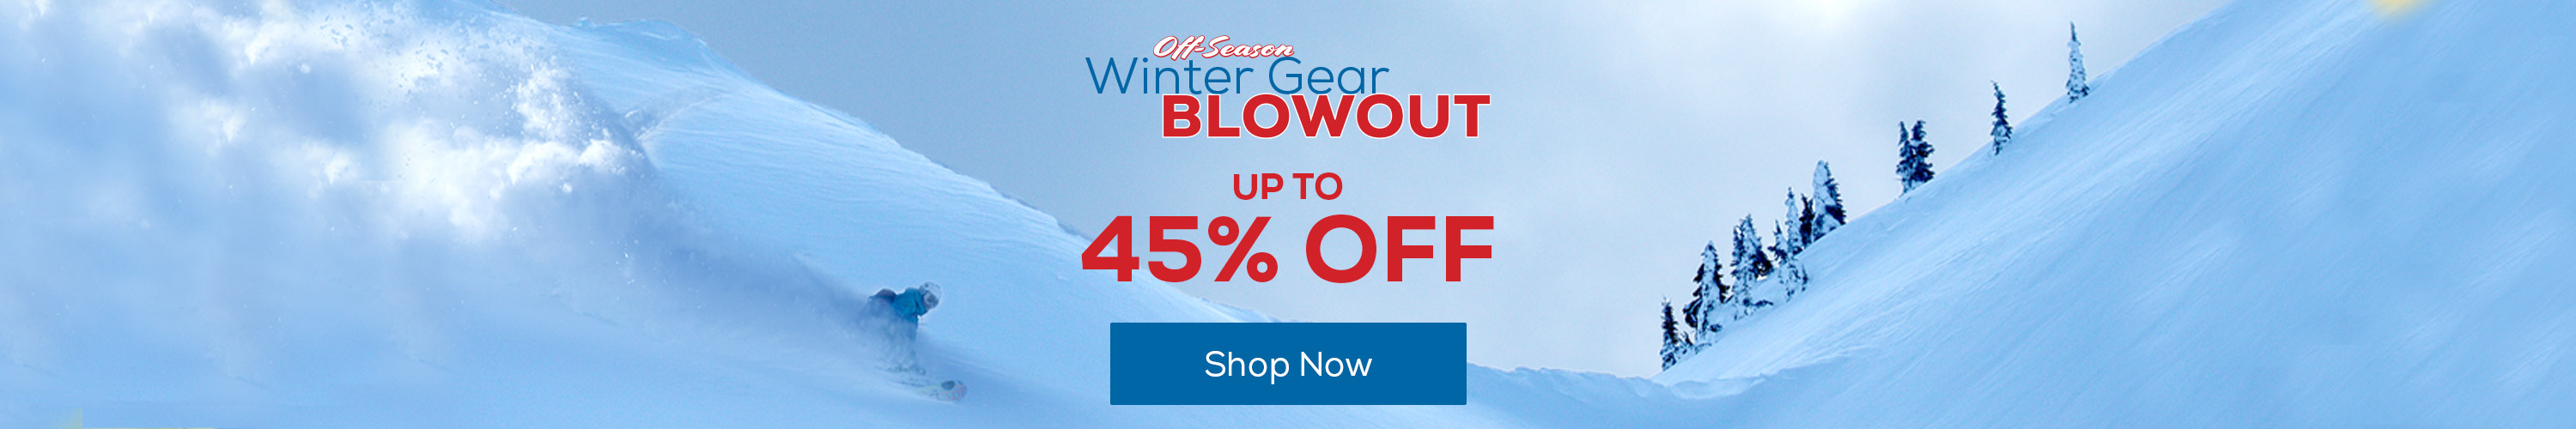 Off-Season Winter Gear Blowout Up to 40% Off